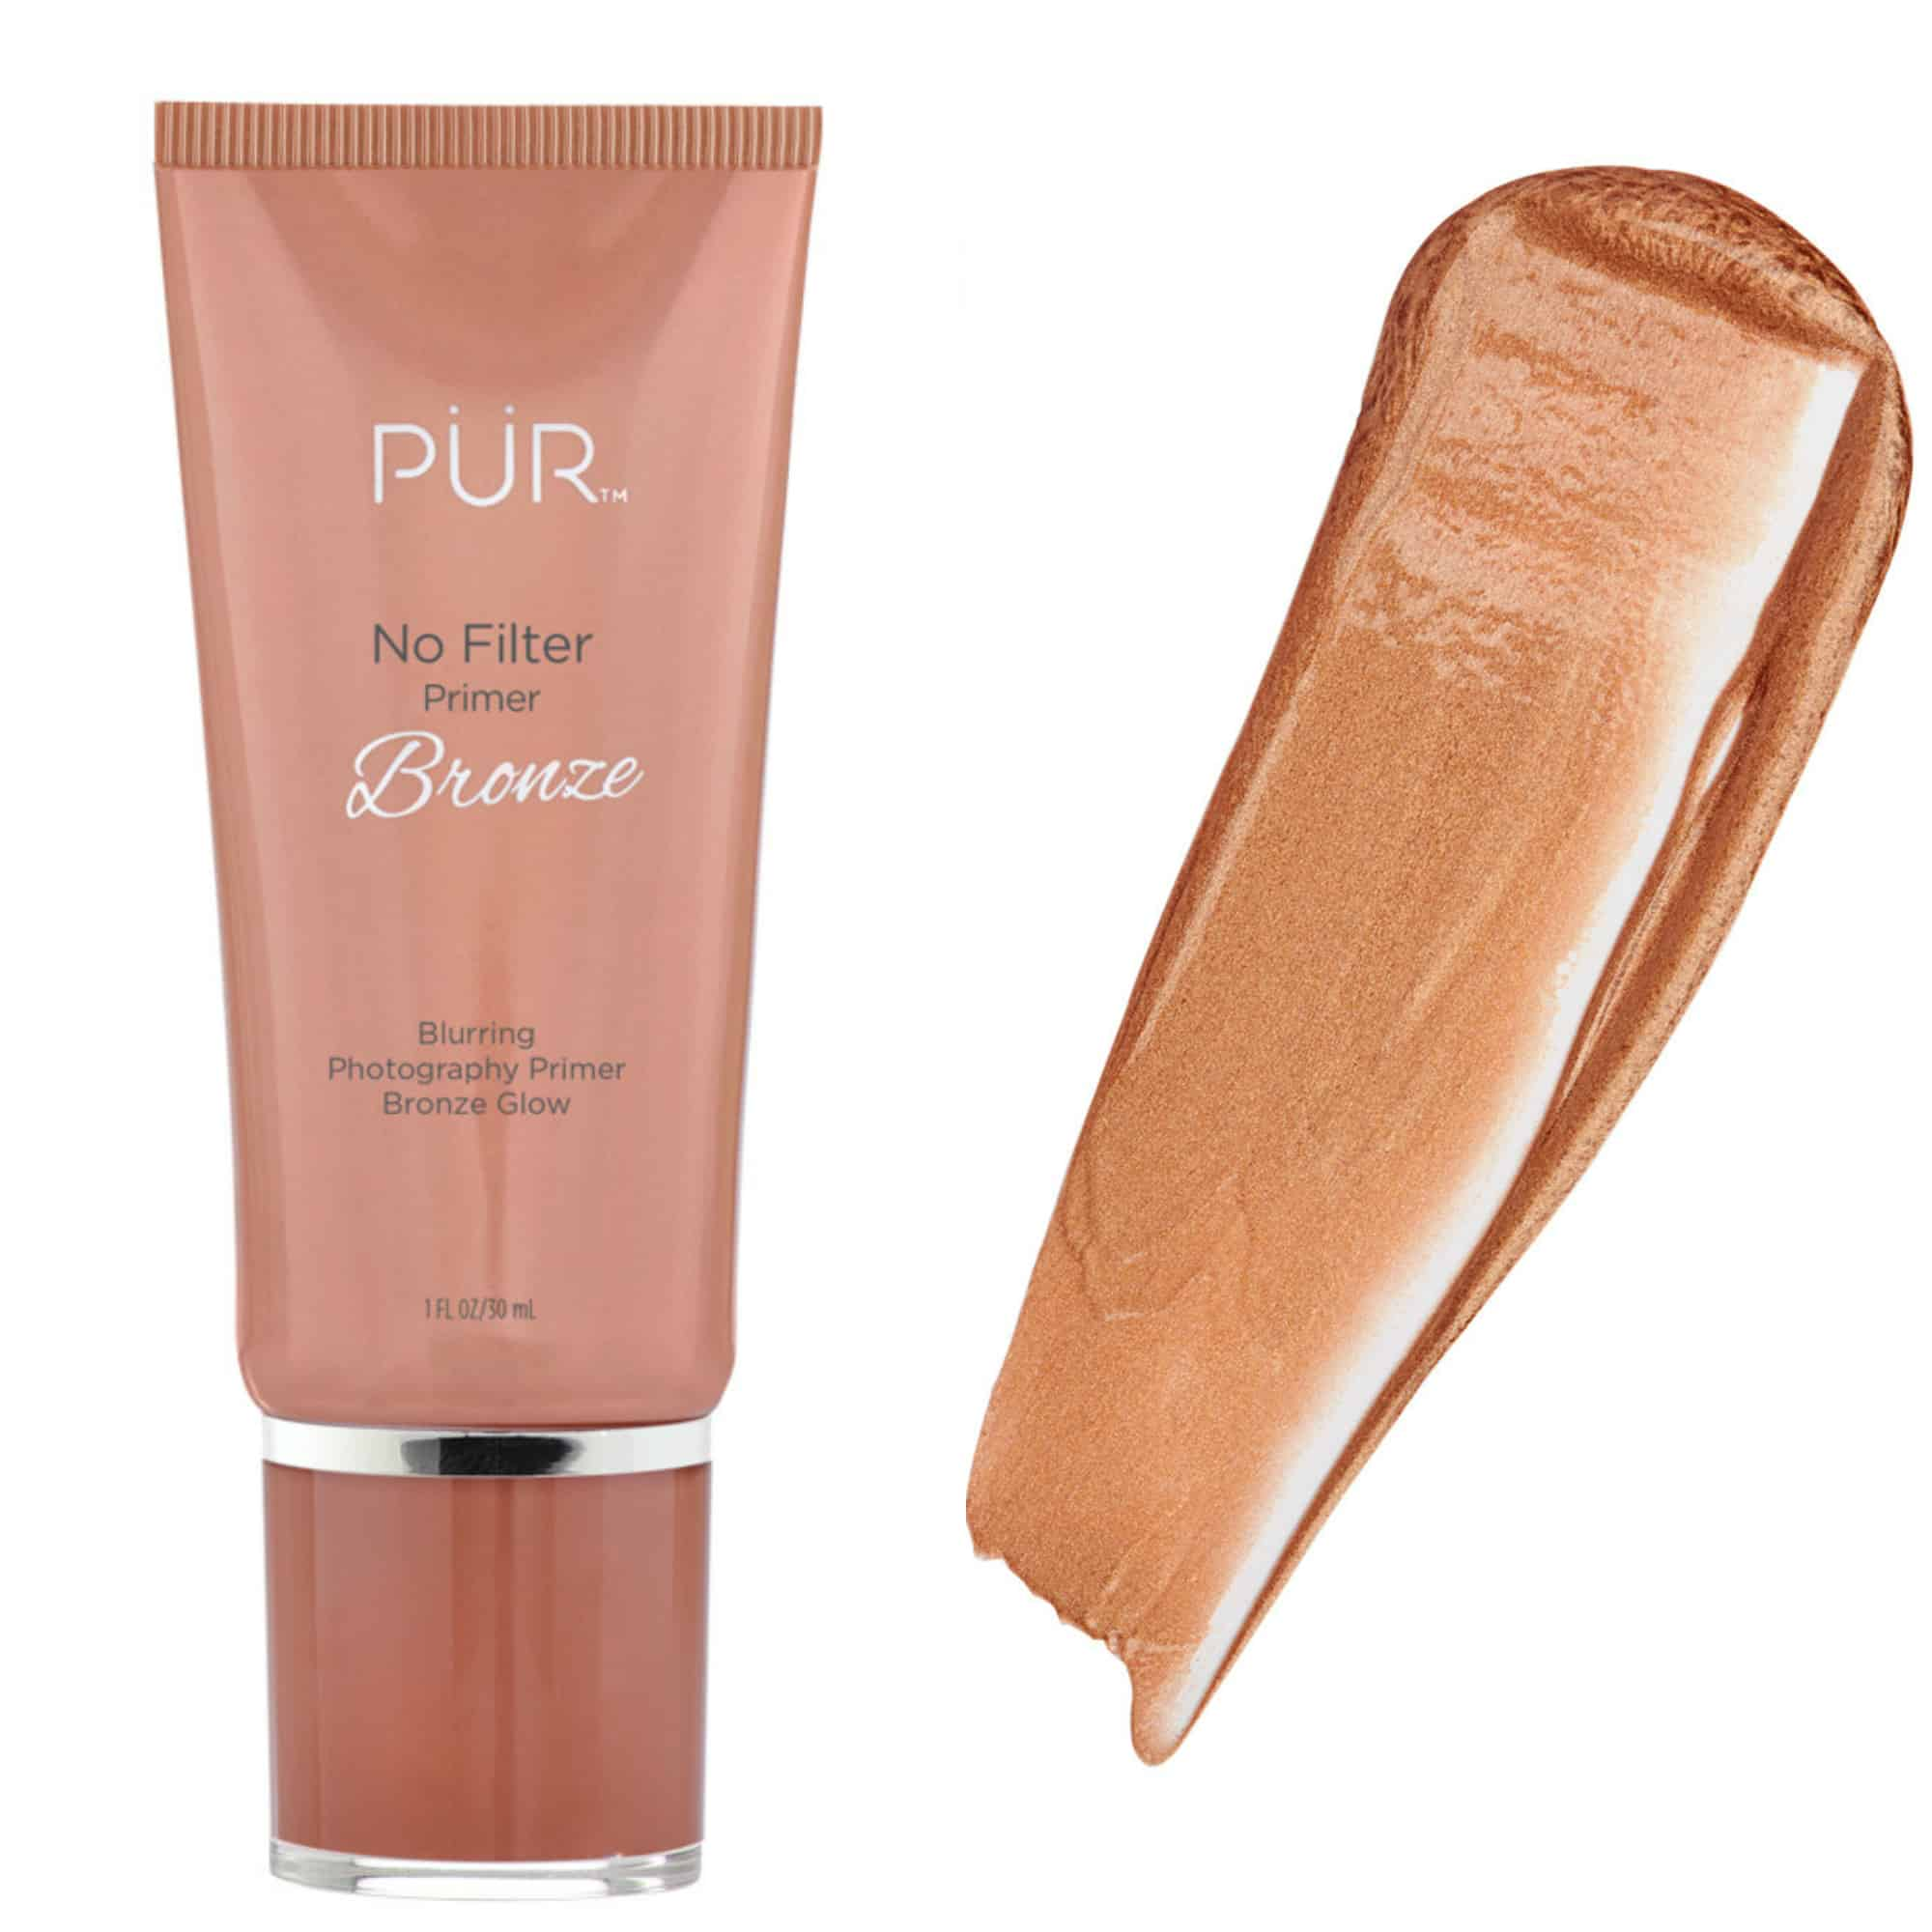 PUR Cosmetics No Filter Primer Blurring Photography Primer